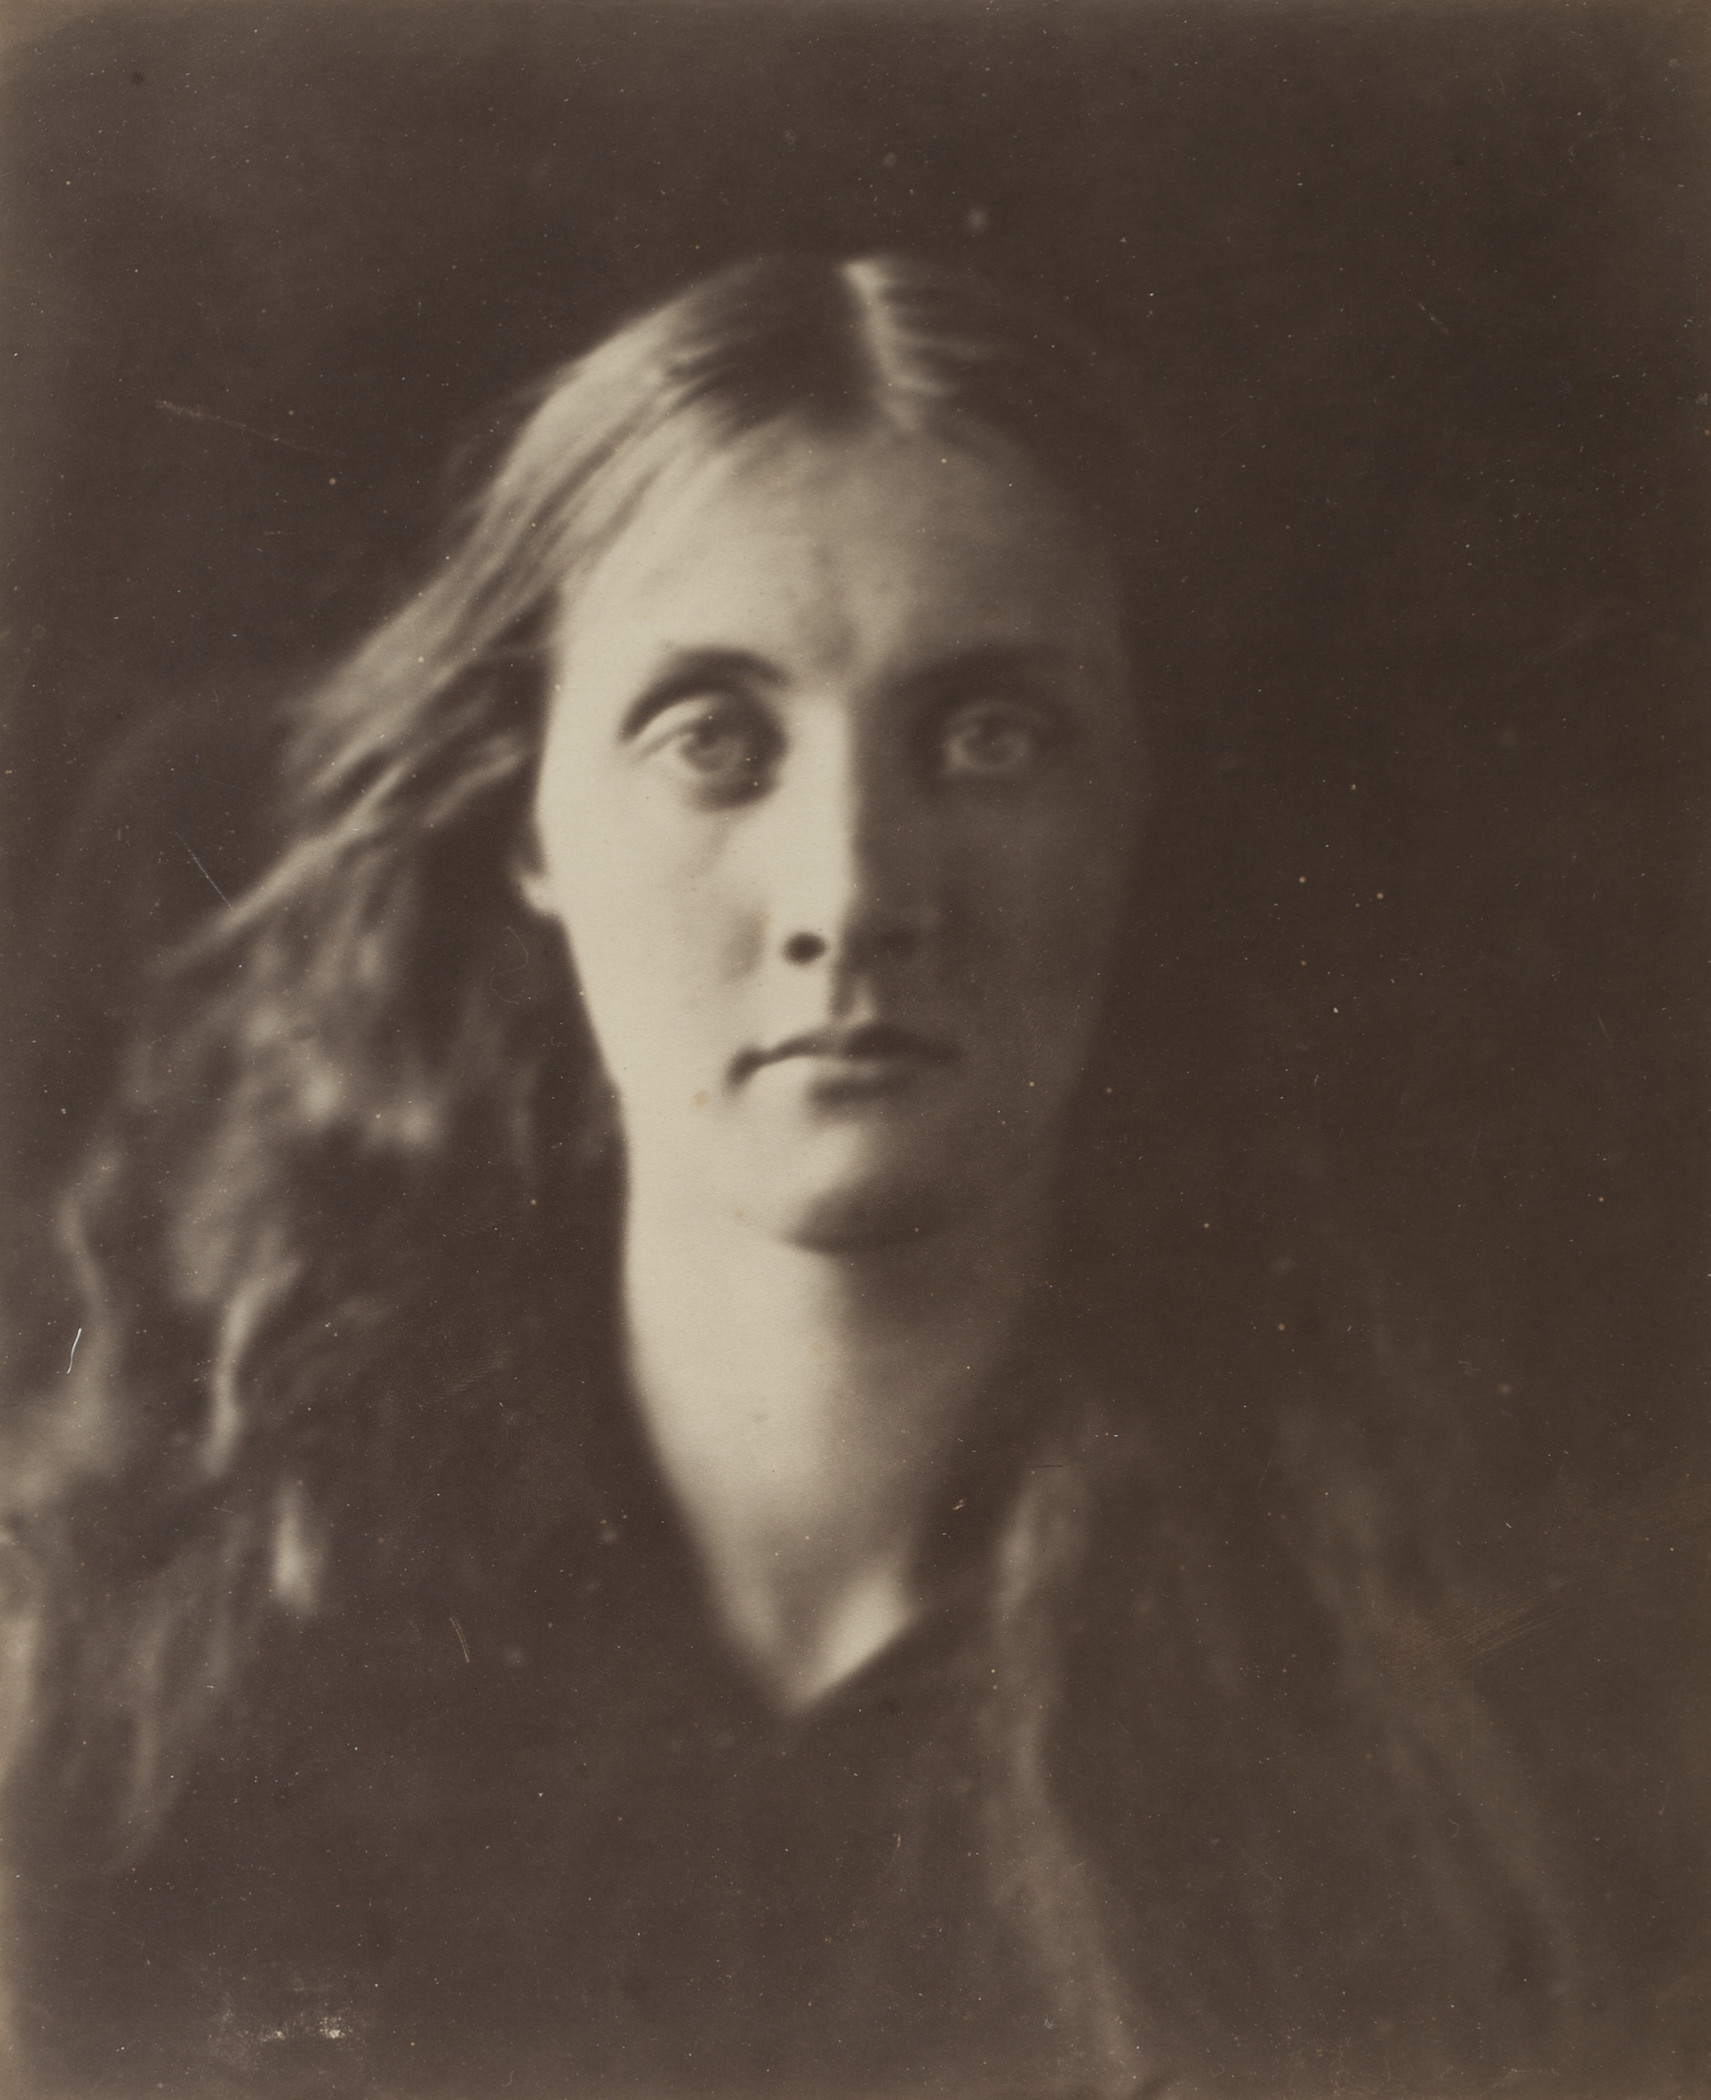 Julia Margaret Cameron, Julia Jackson, c. 1868, Los Angeles County Museum of Art, The Marjorie and Leonard Vernon Collection, gift of The Annenberg Foundation, acquired from Carol Vernon and Robert Turbin, photo © Museum Associates/LACMA